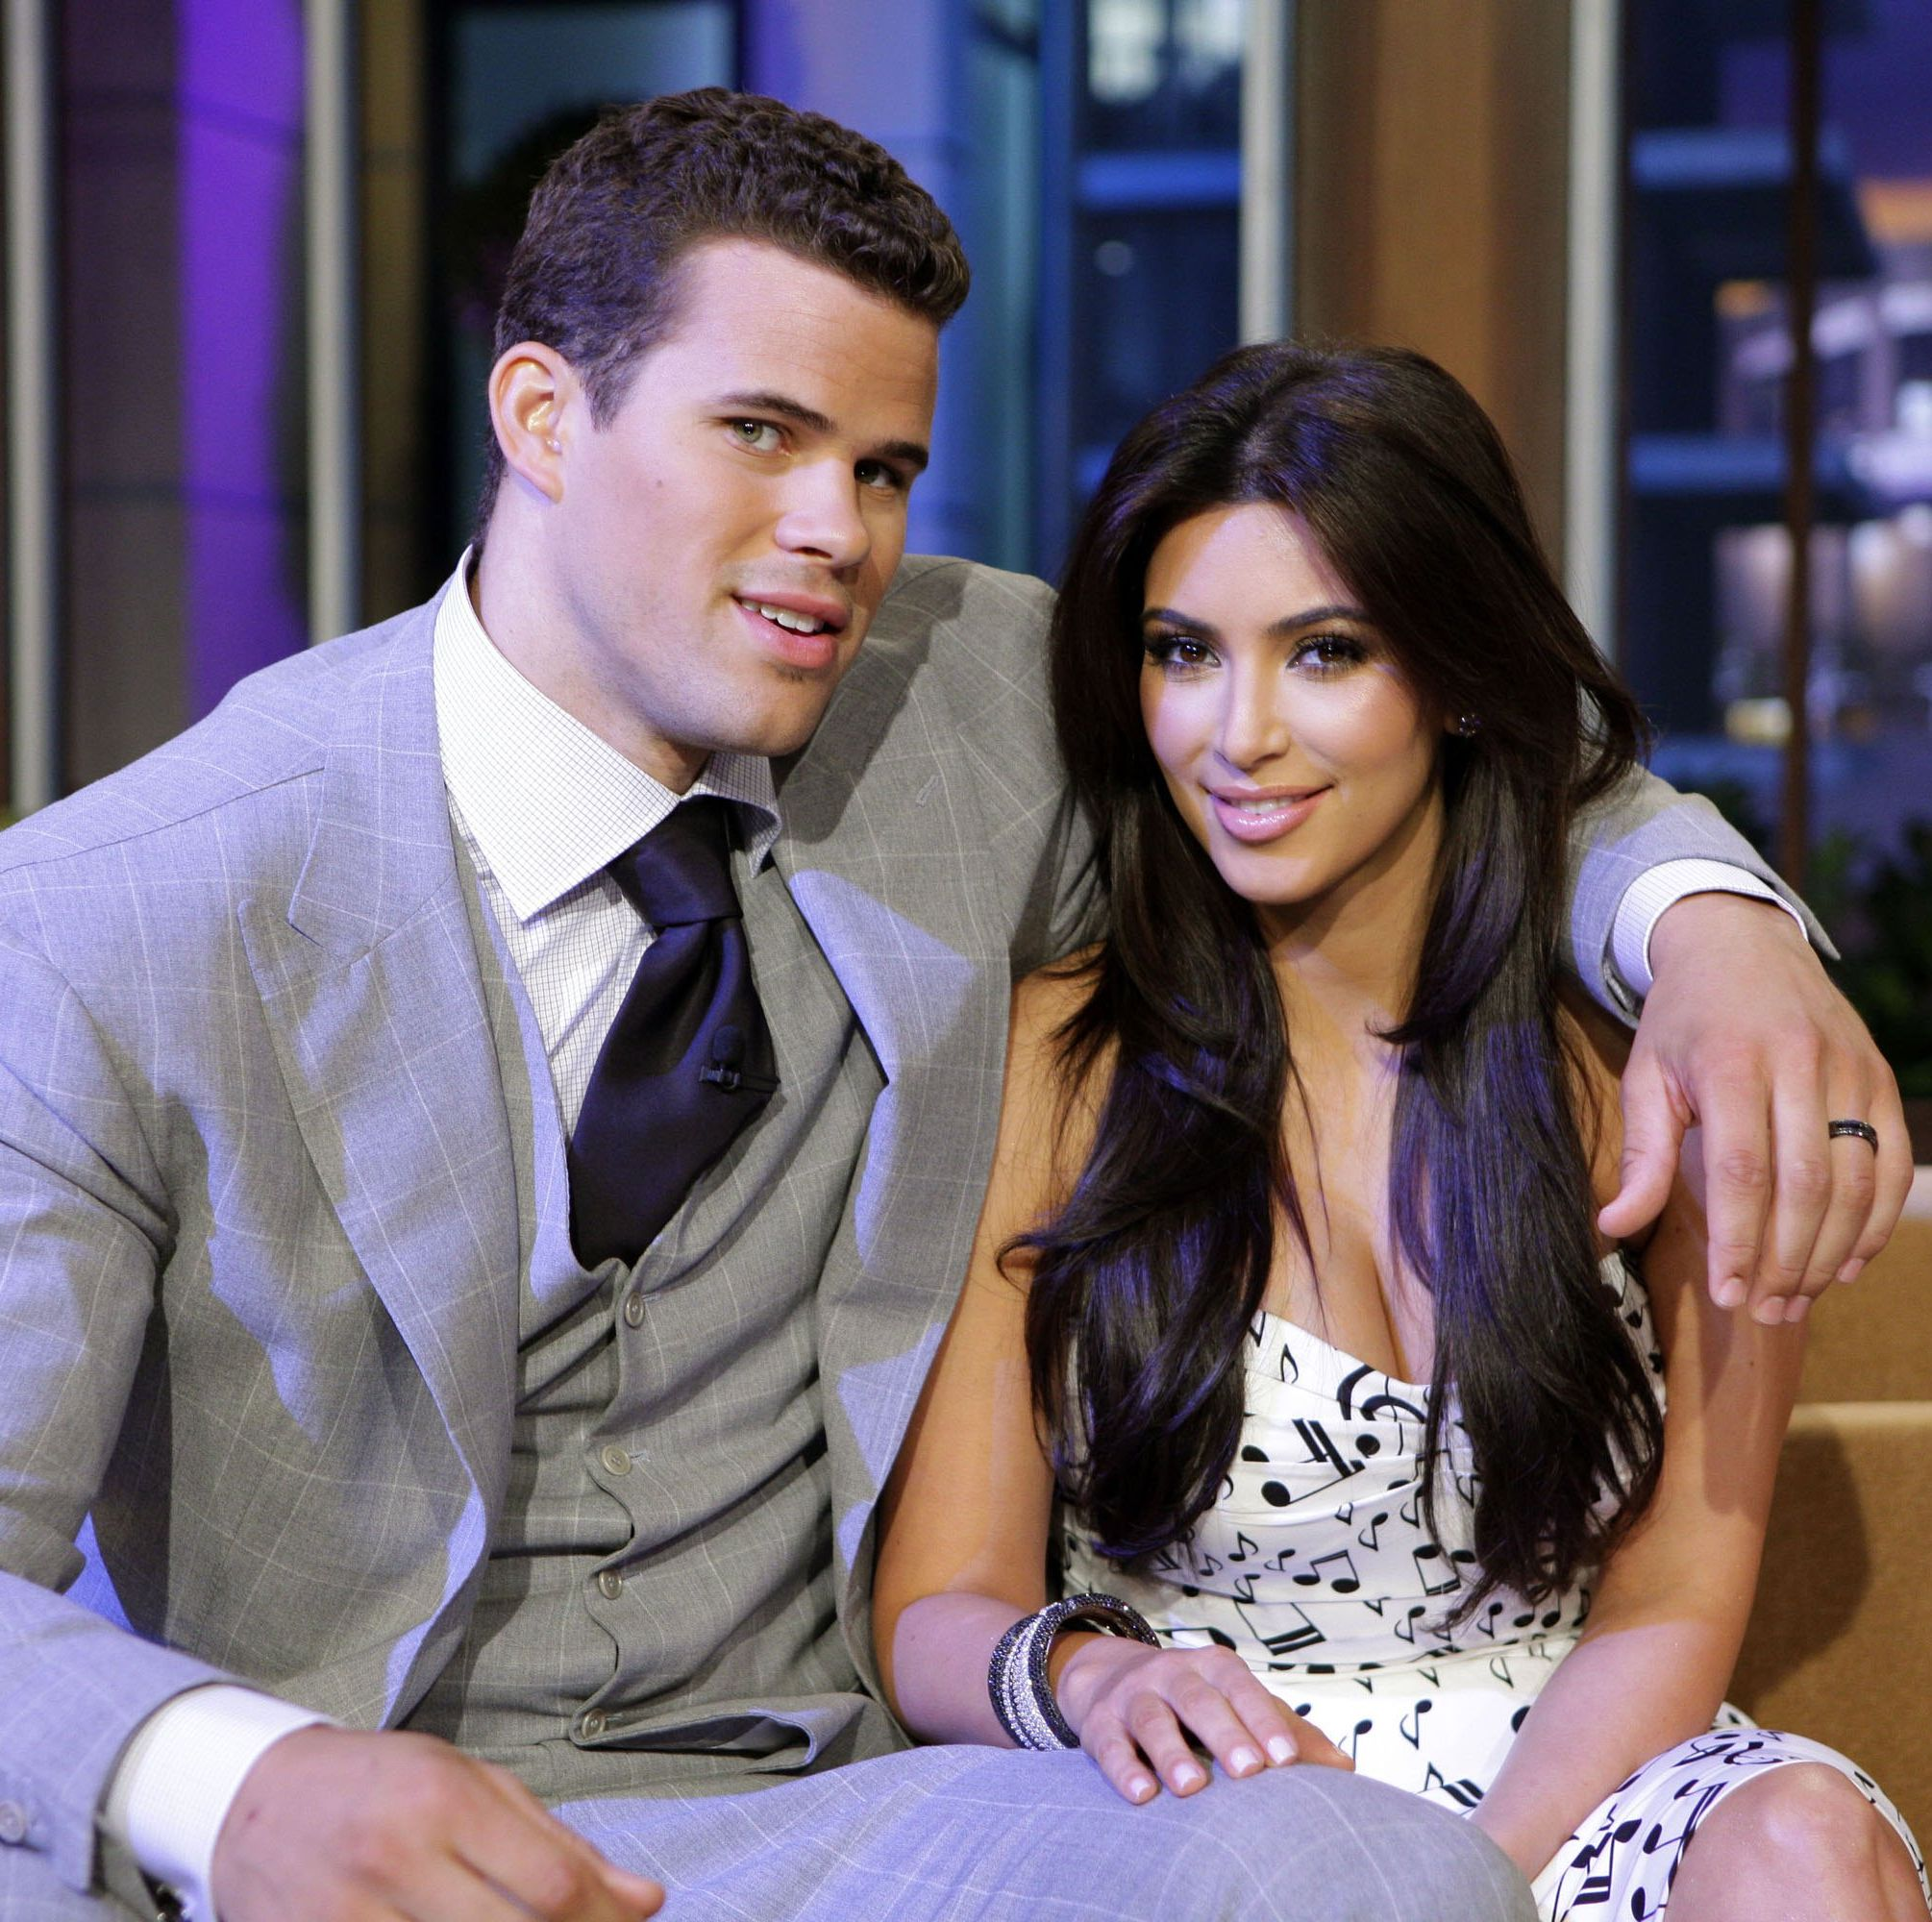 Kris Humphries Said Divorcing Kim Kardashian Was Super Embarrassing and Made Him Not Want to Leave the House